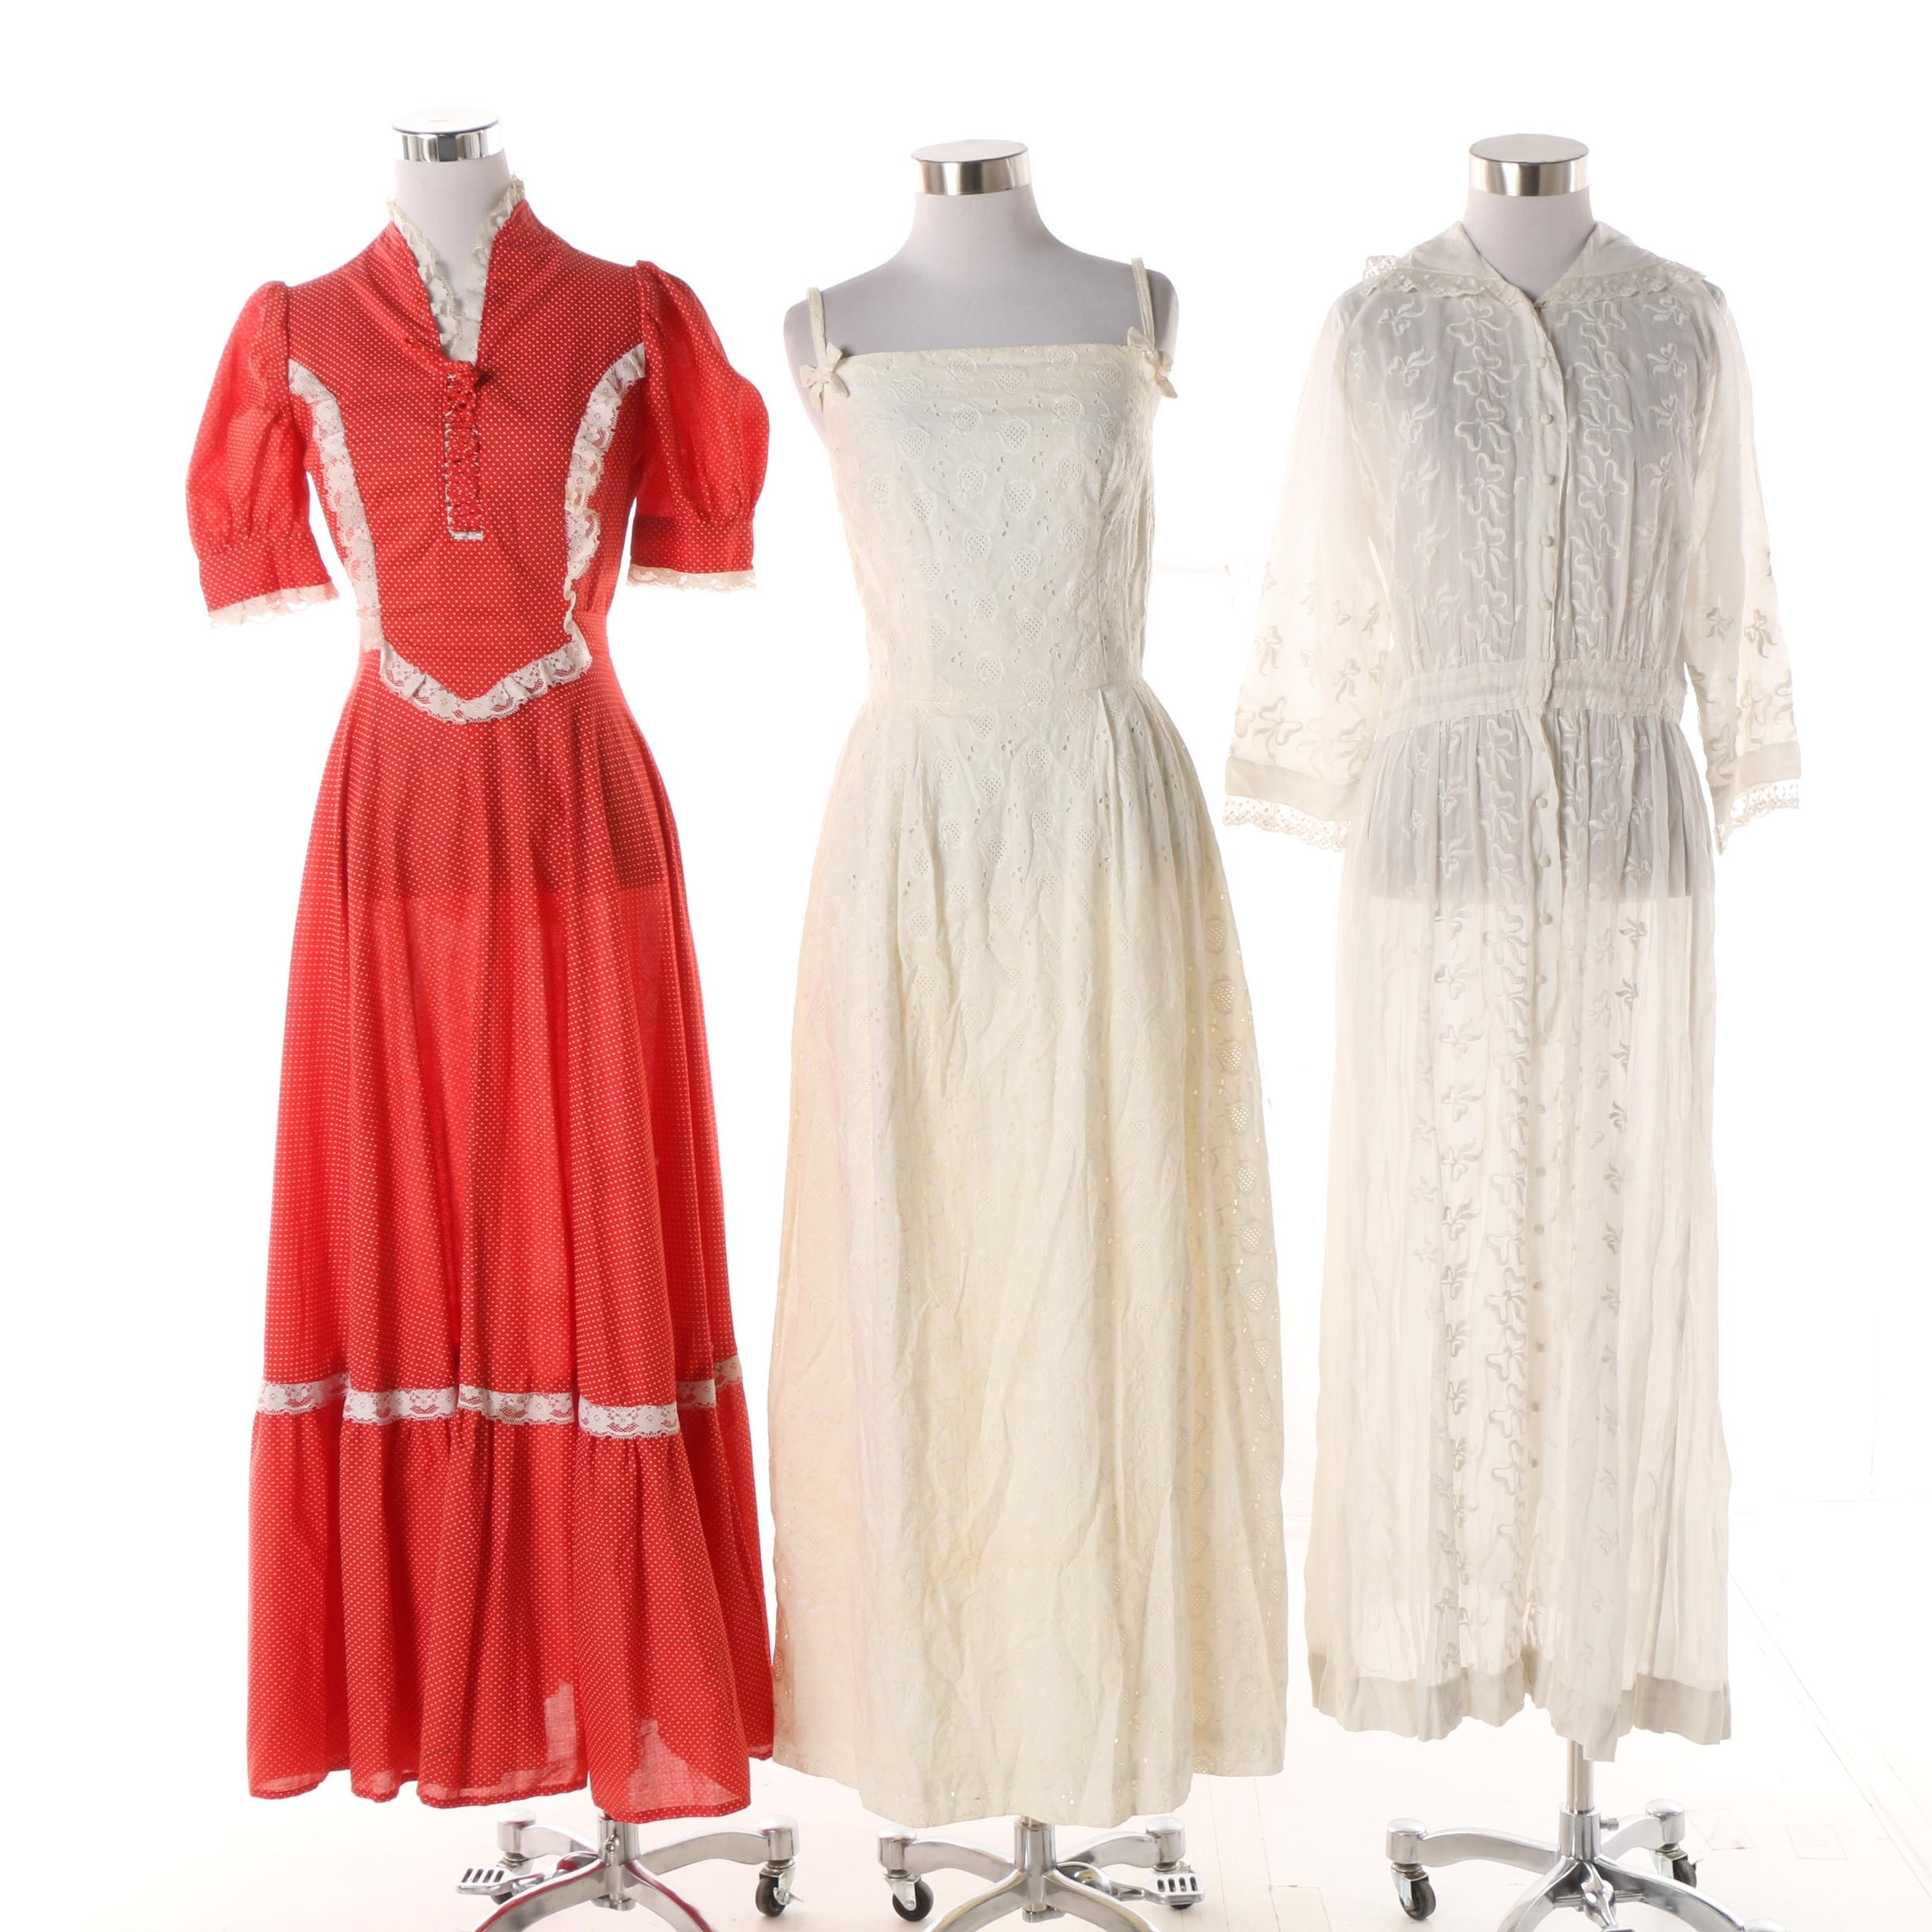 Women's Vintage Polka Dot, Eyelet and Embroidered Maxi Dresses